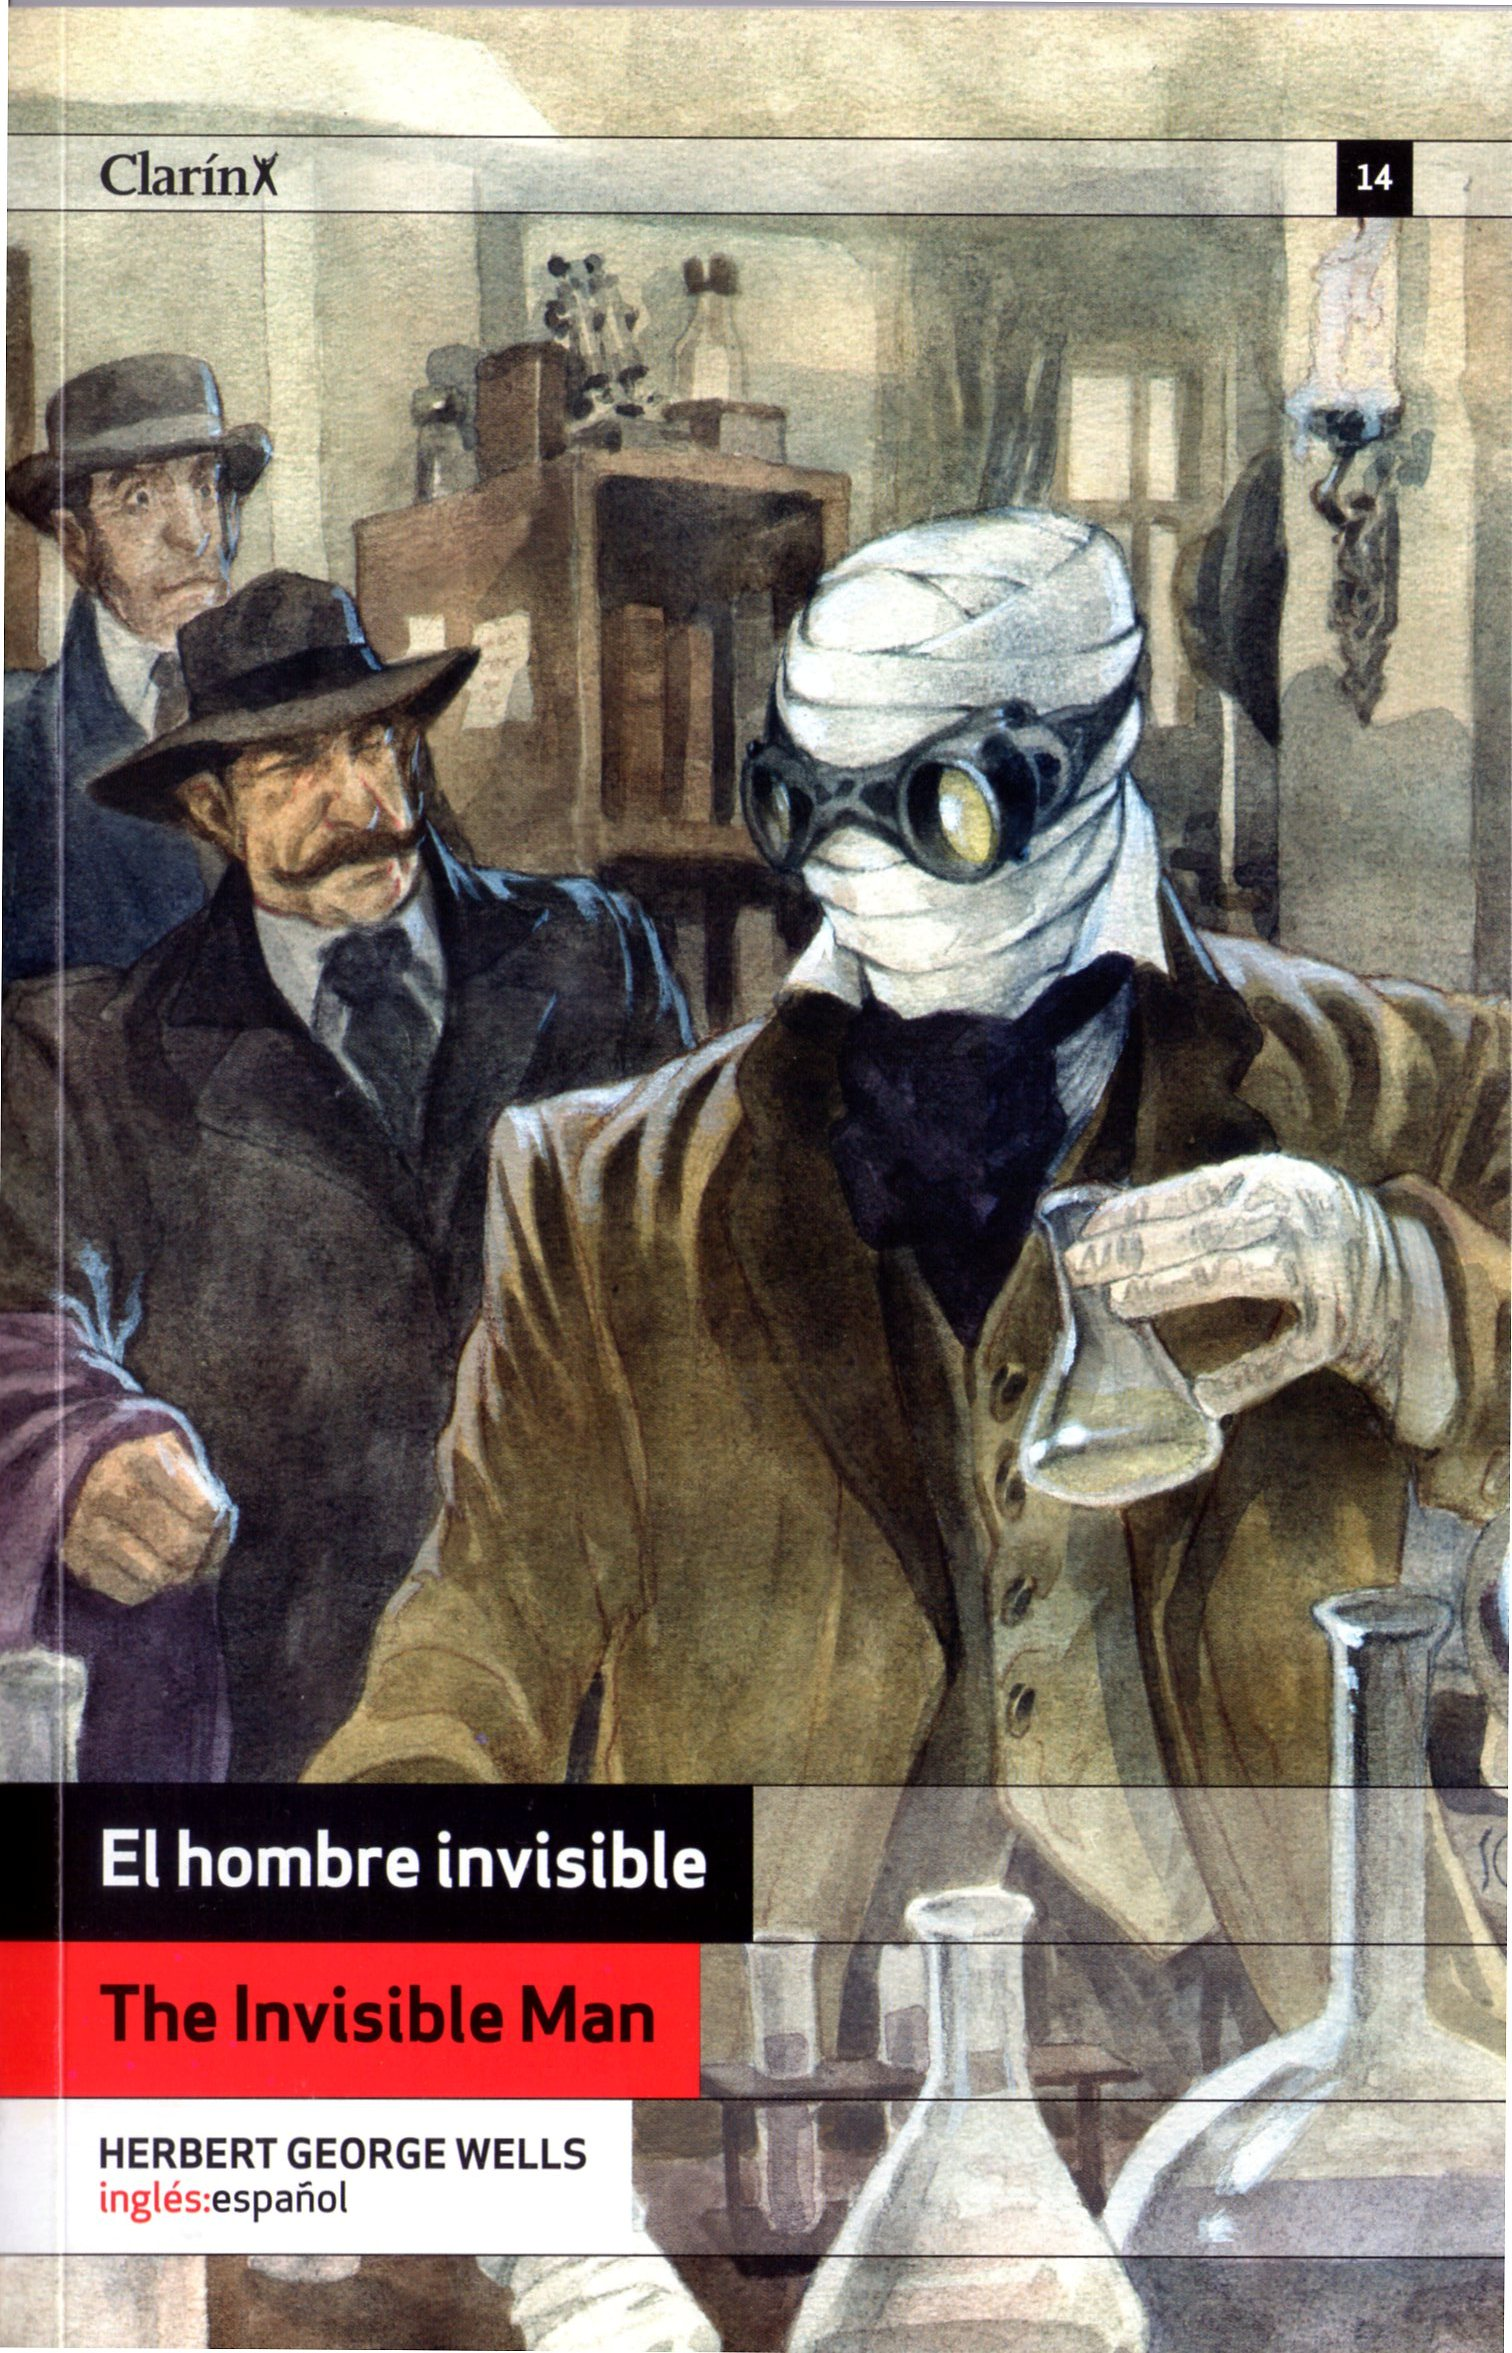 the invisible man by herbert wells